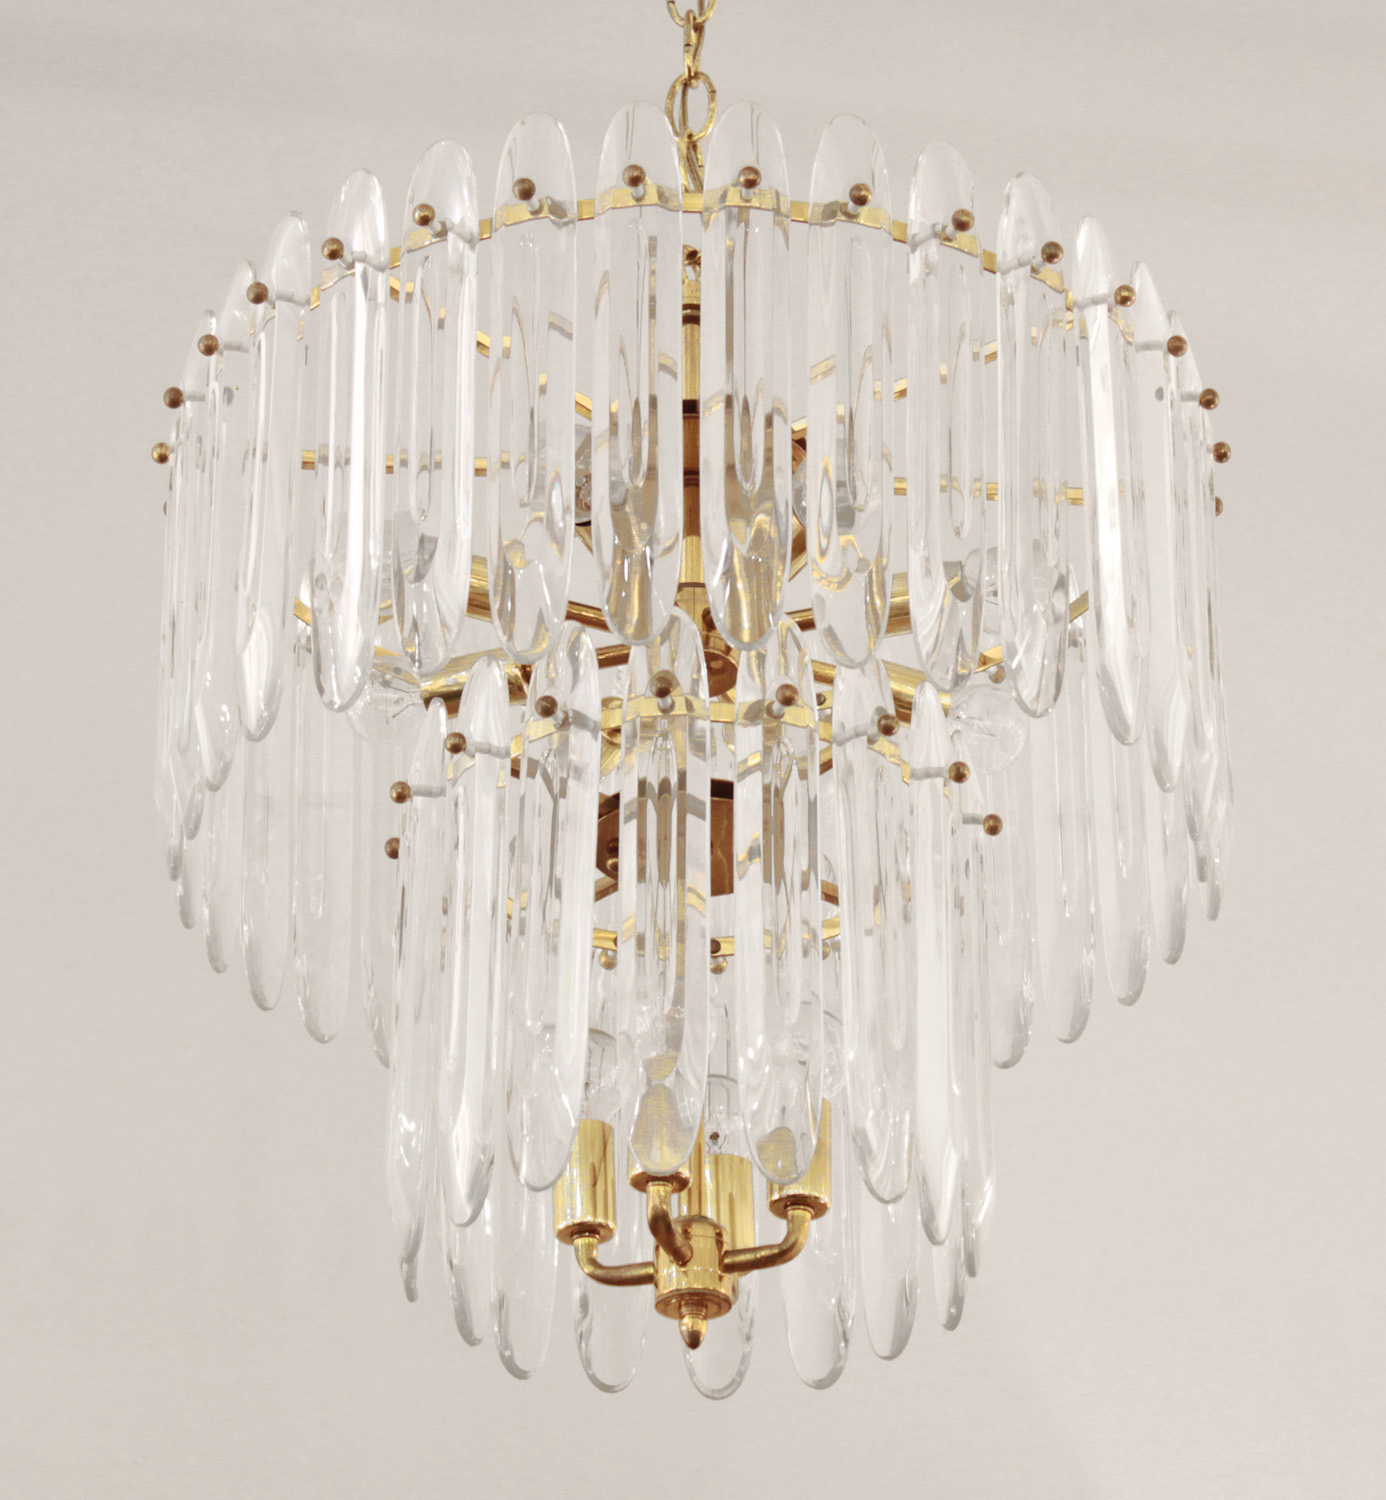 Sciolari 40 big clear crystals chandelier153 alt hires.jpg